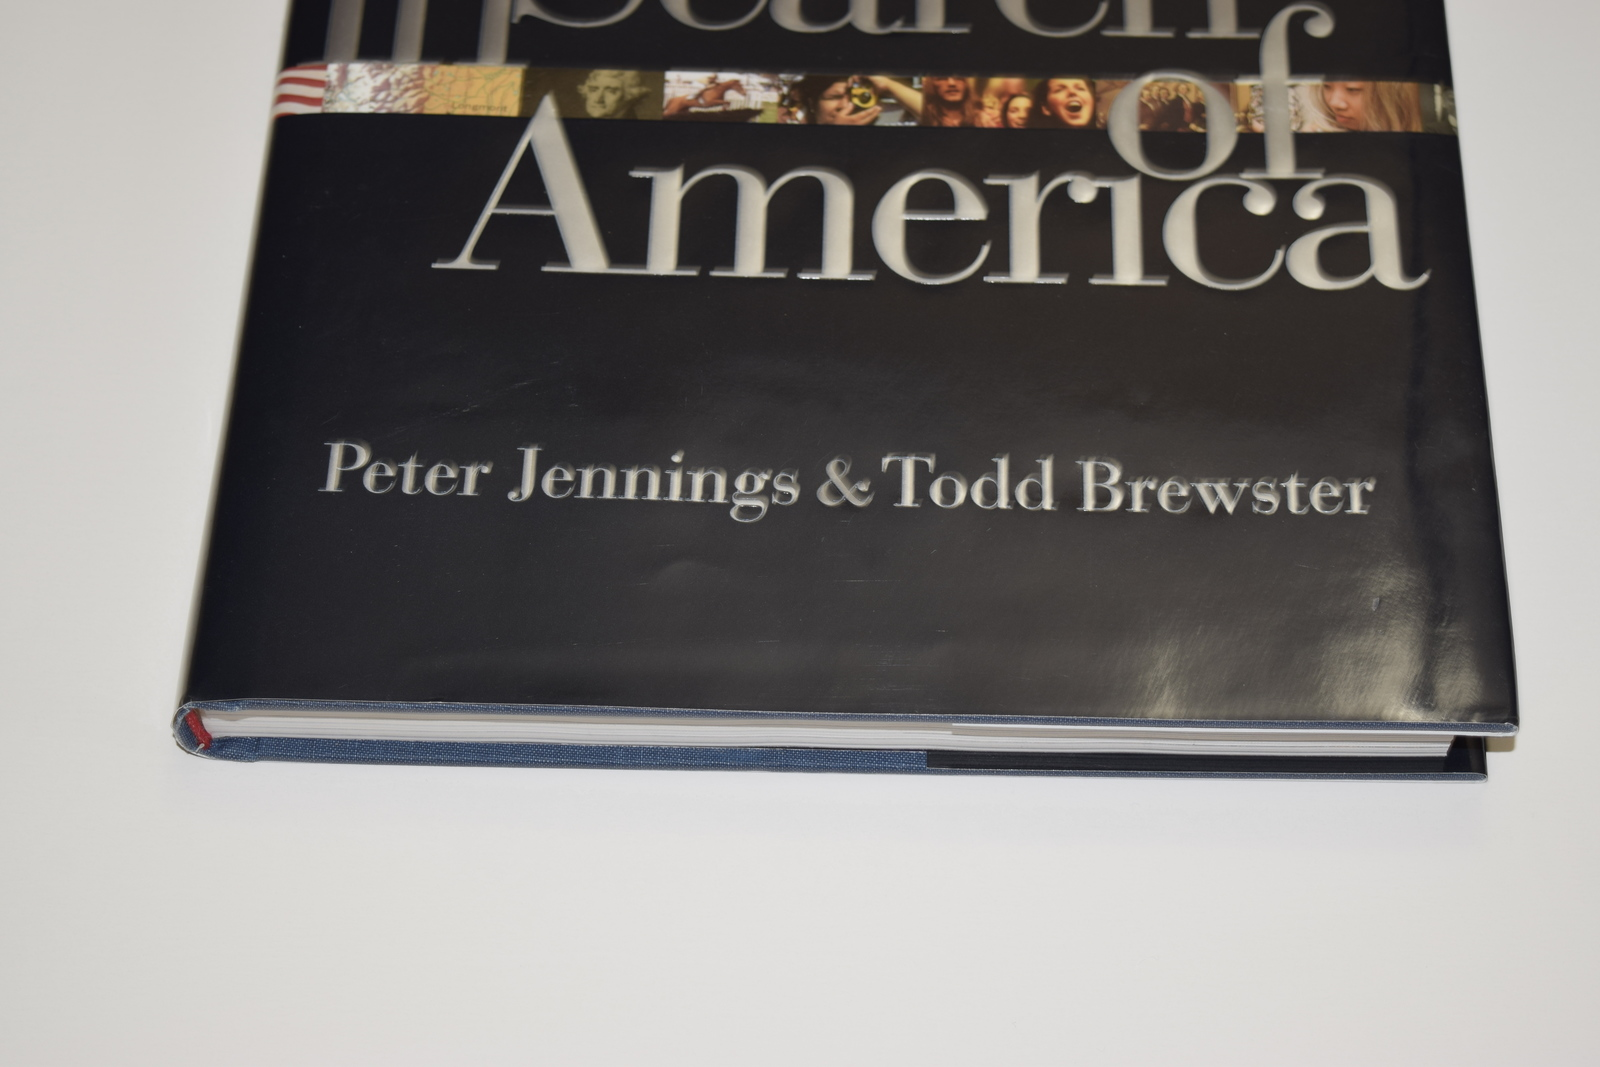 In Search of America By Peter Jennings & Todd Brewster image 3